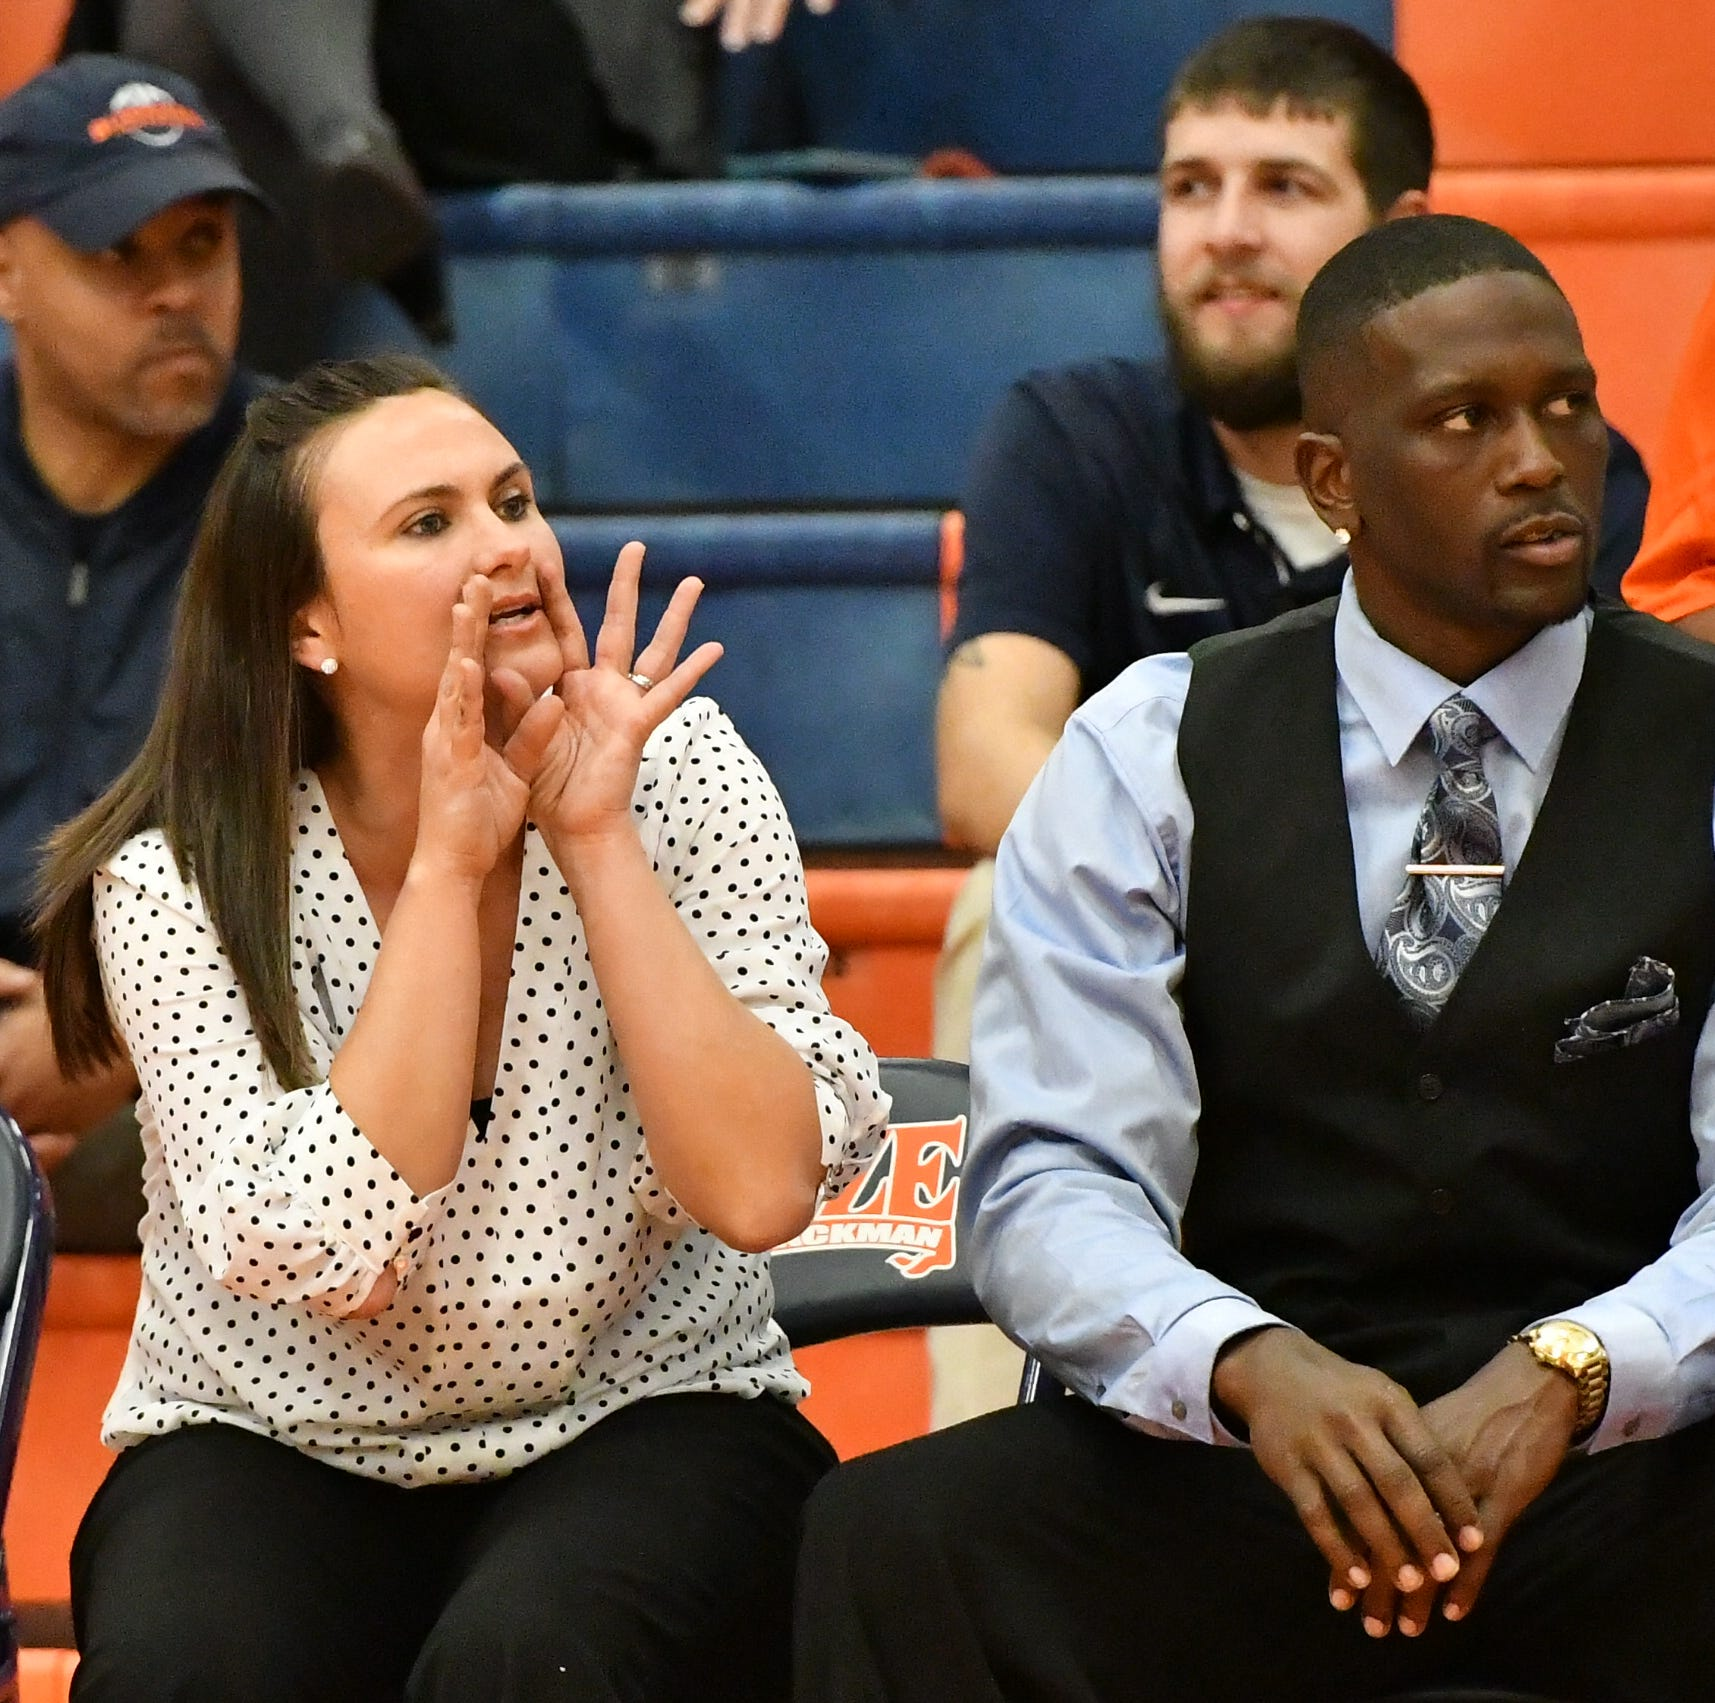 Blackman coach Wendi Scott shouts instruction to her squad during Tuesday's win over Whites Creek.